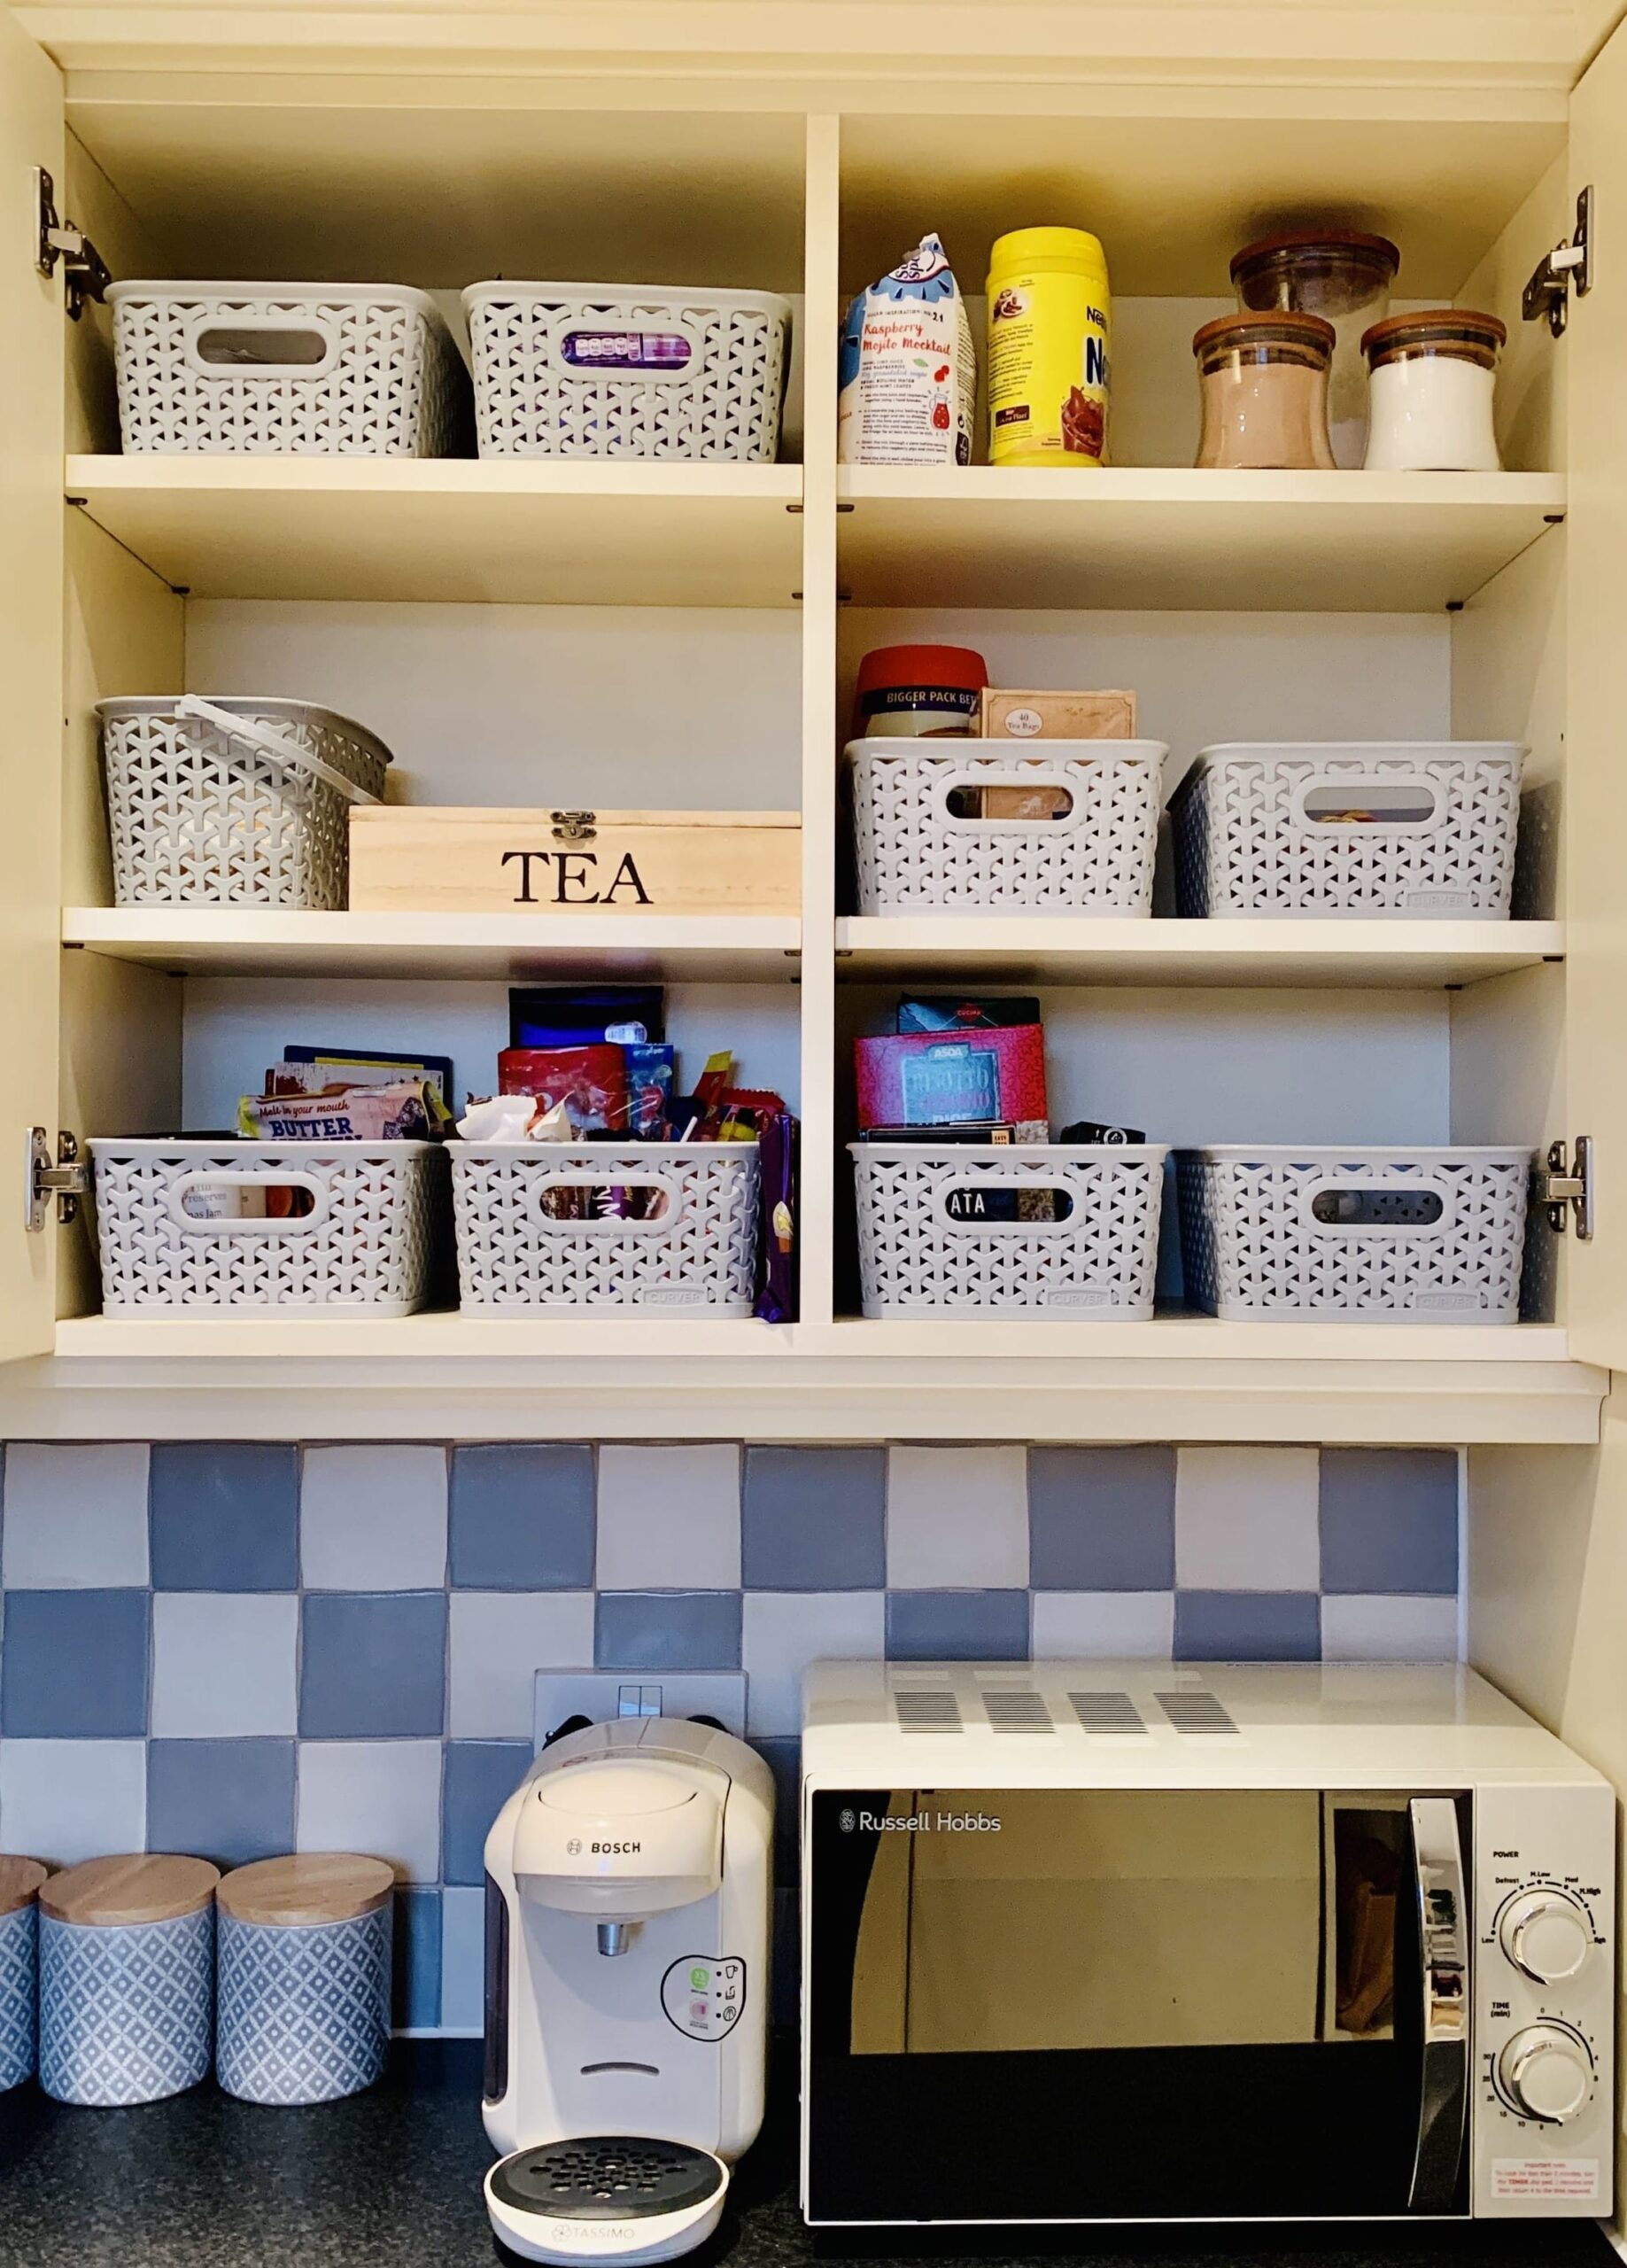 Organise Your Home - Kitchen Baskets